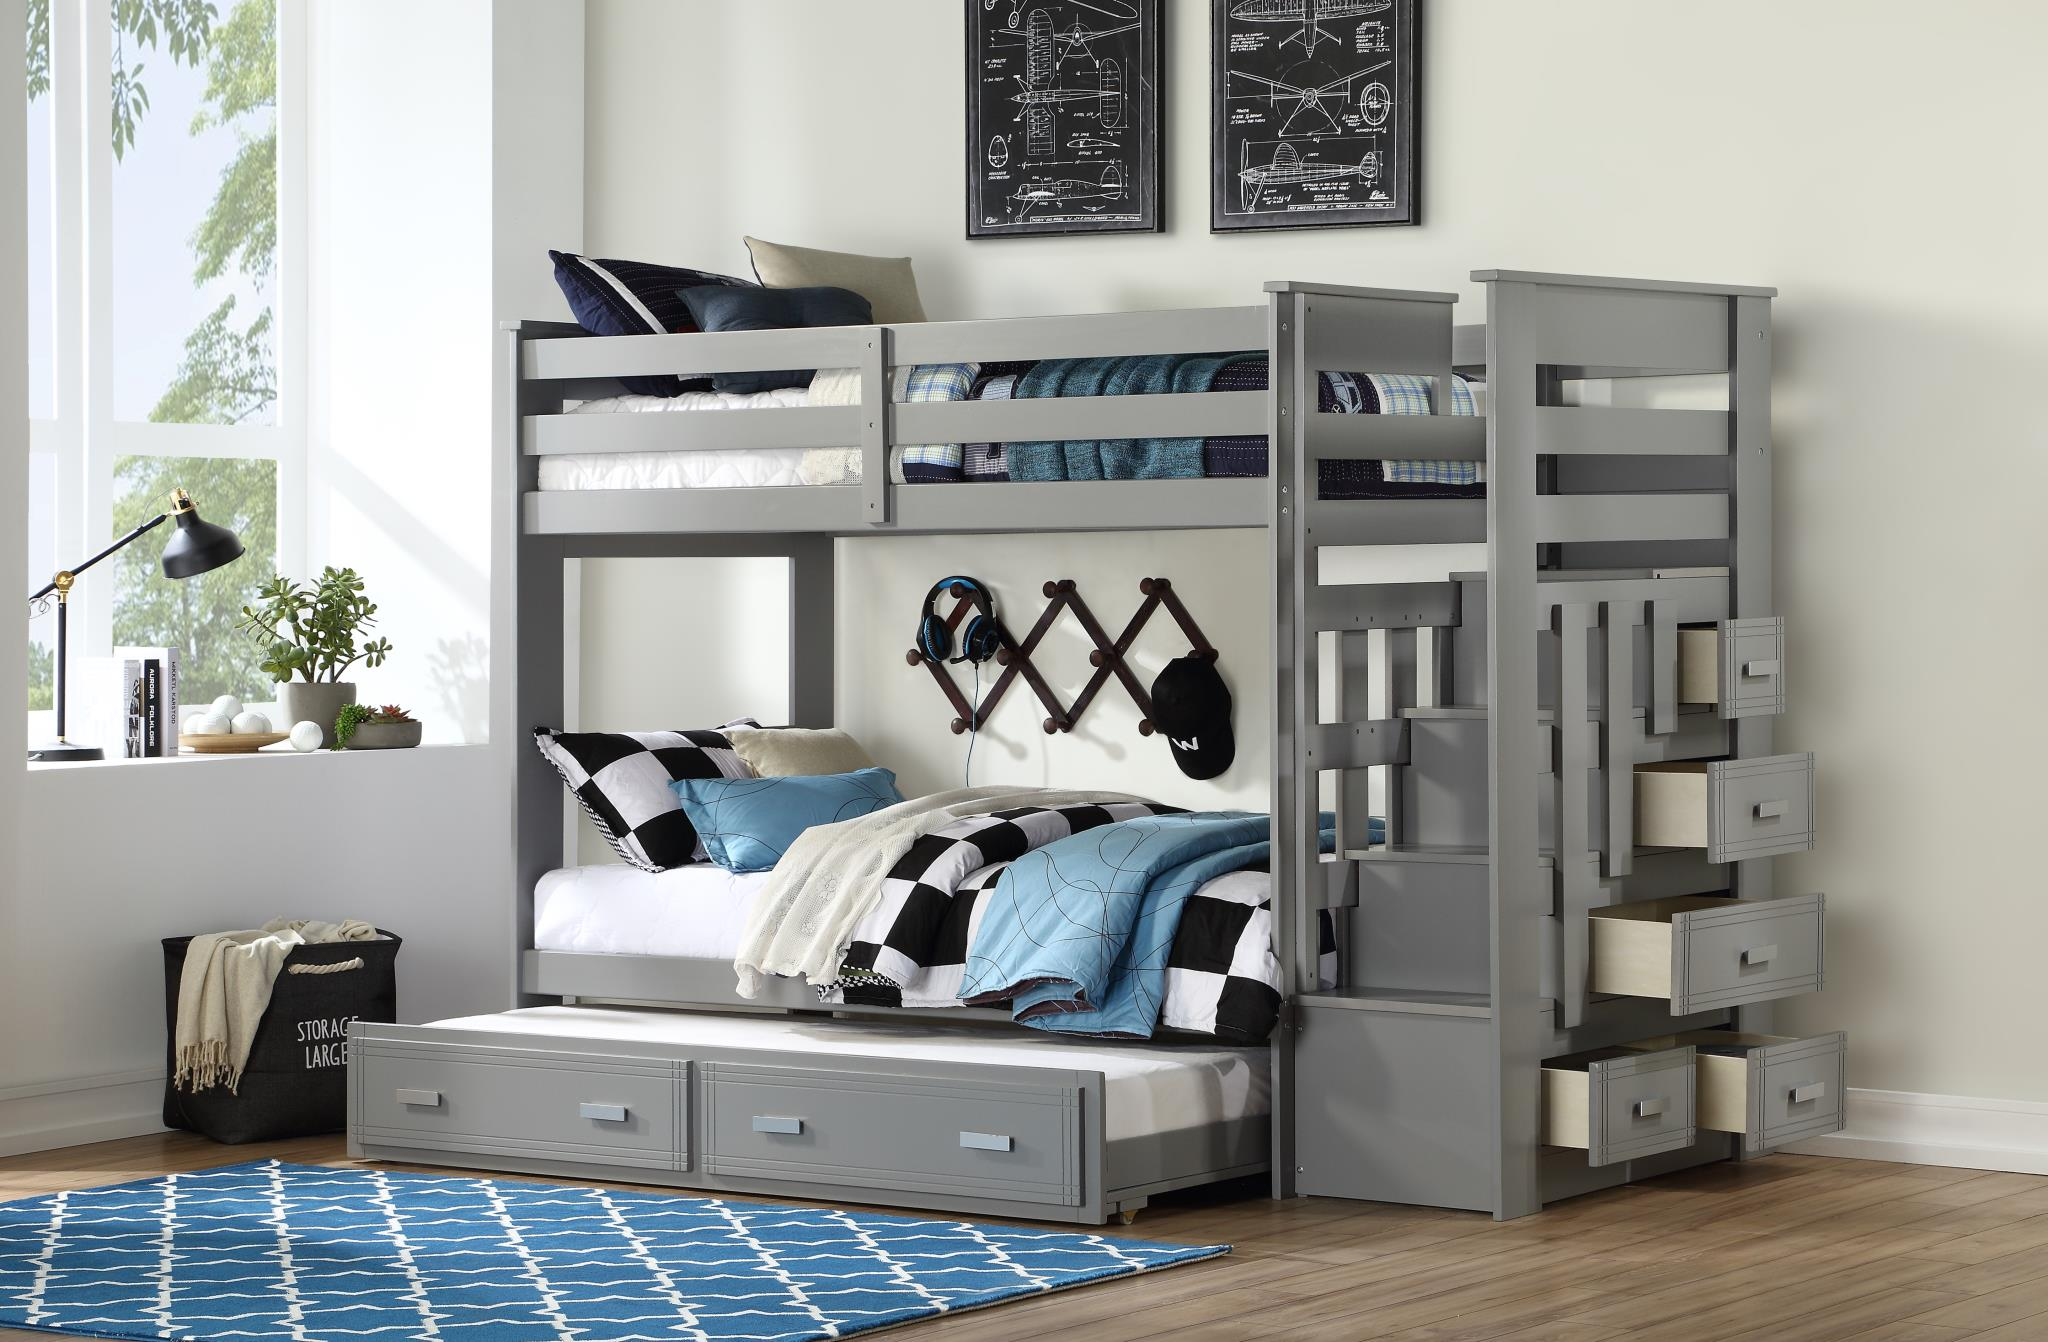 Gray Bunk Bed with Storage Ladder Drawers Opened